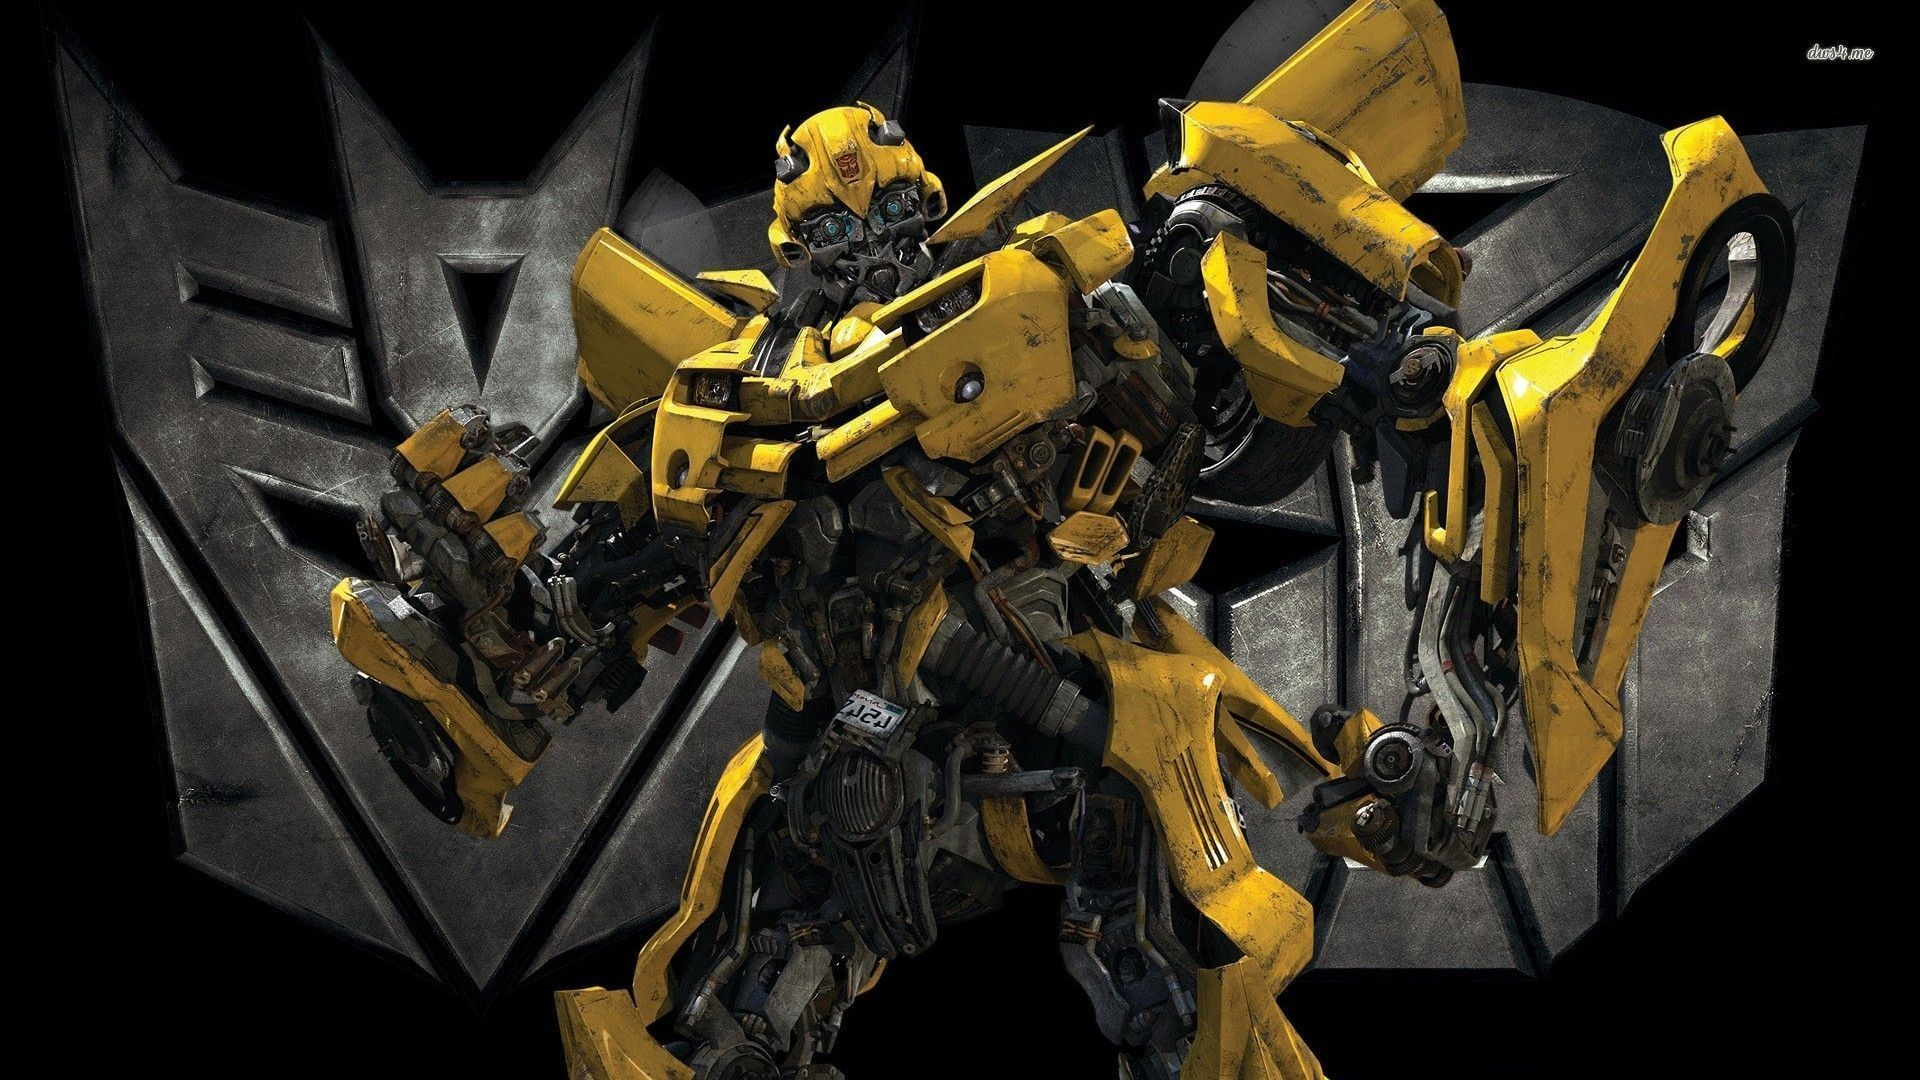 1920x1080 BumbleBee Transformers Wallpaper HD For Your Computer | best | Pinterest |  Wallpaper and Wallpaper backgrounds